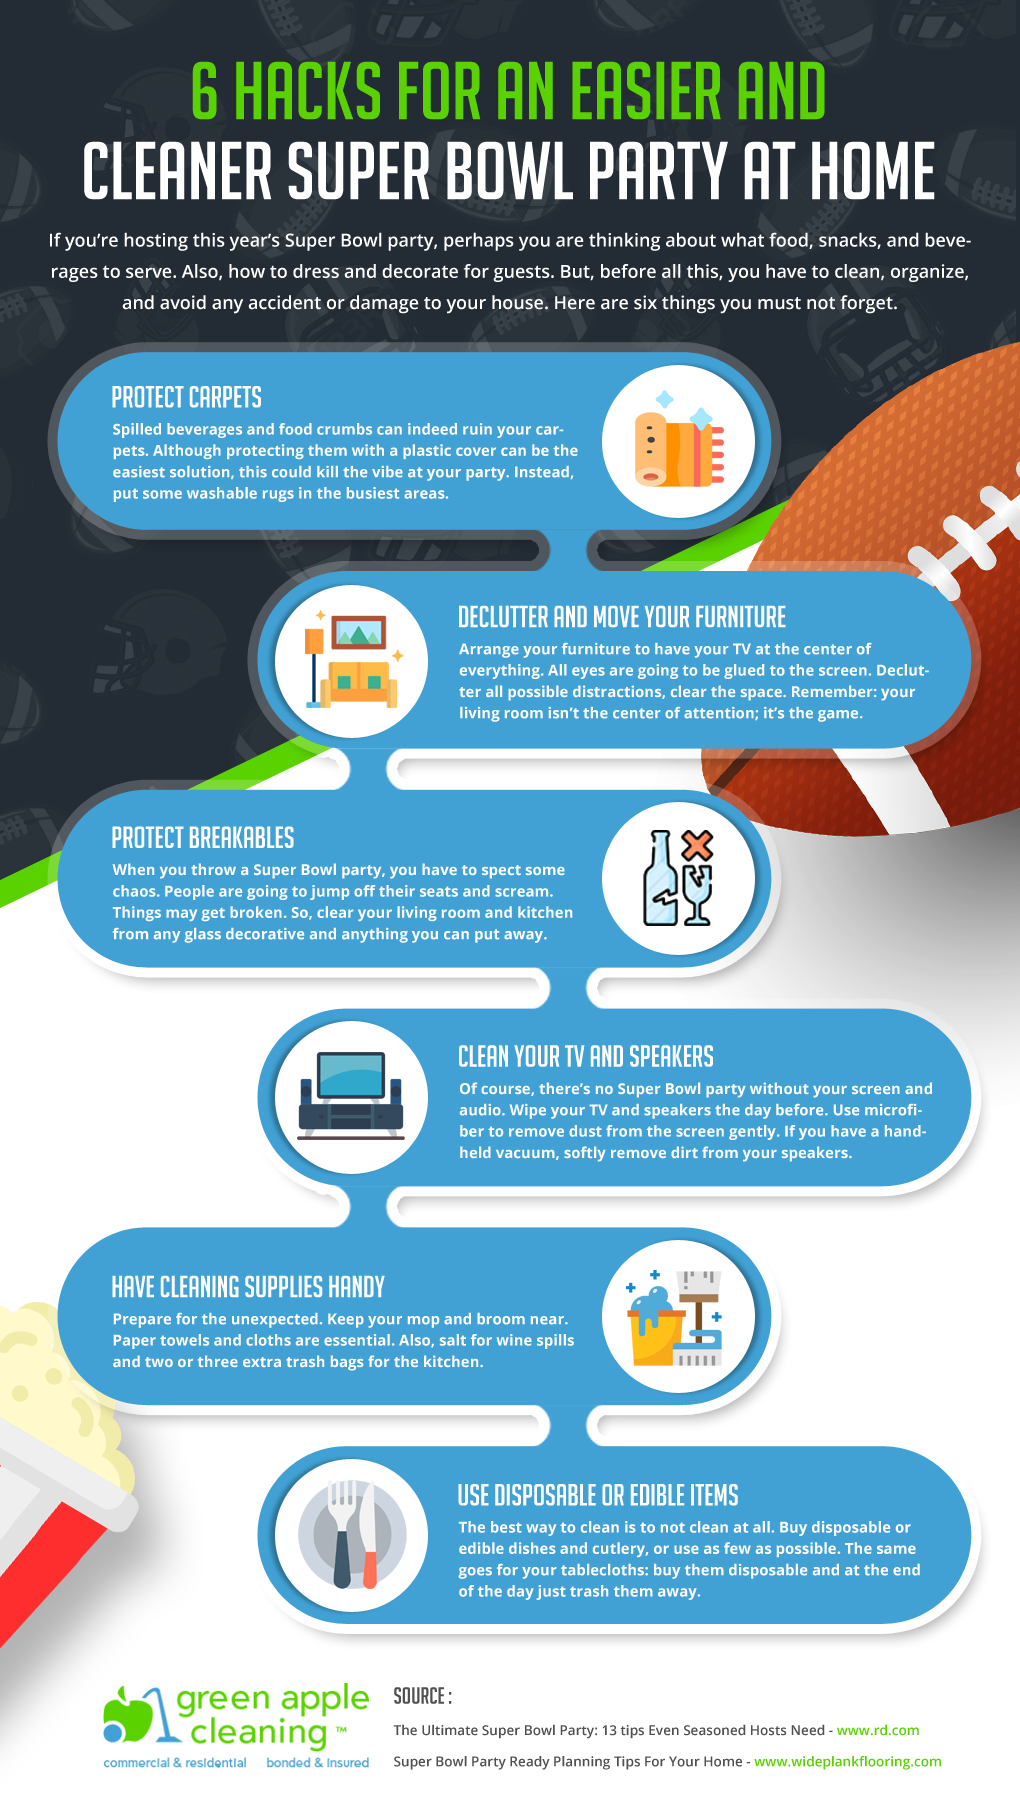 6 Hacks For An Easier And Cleaner Super Bowl Party At Home